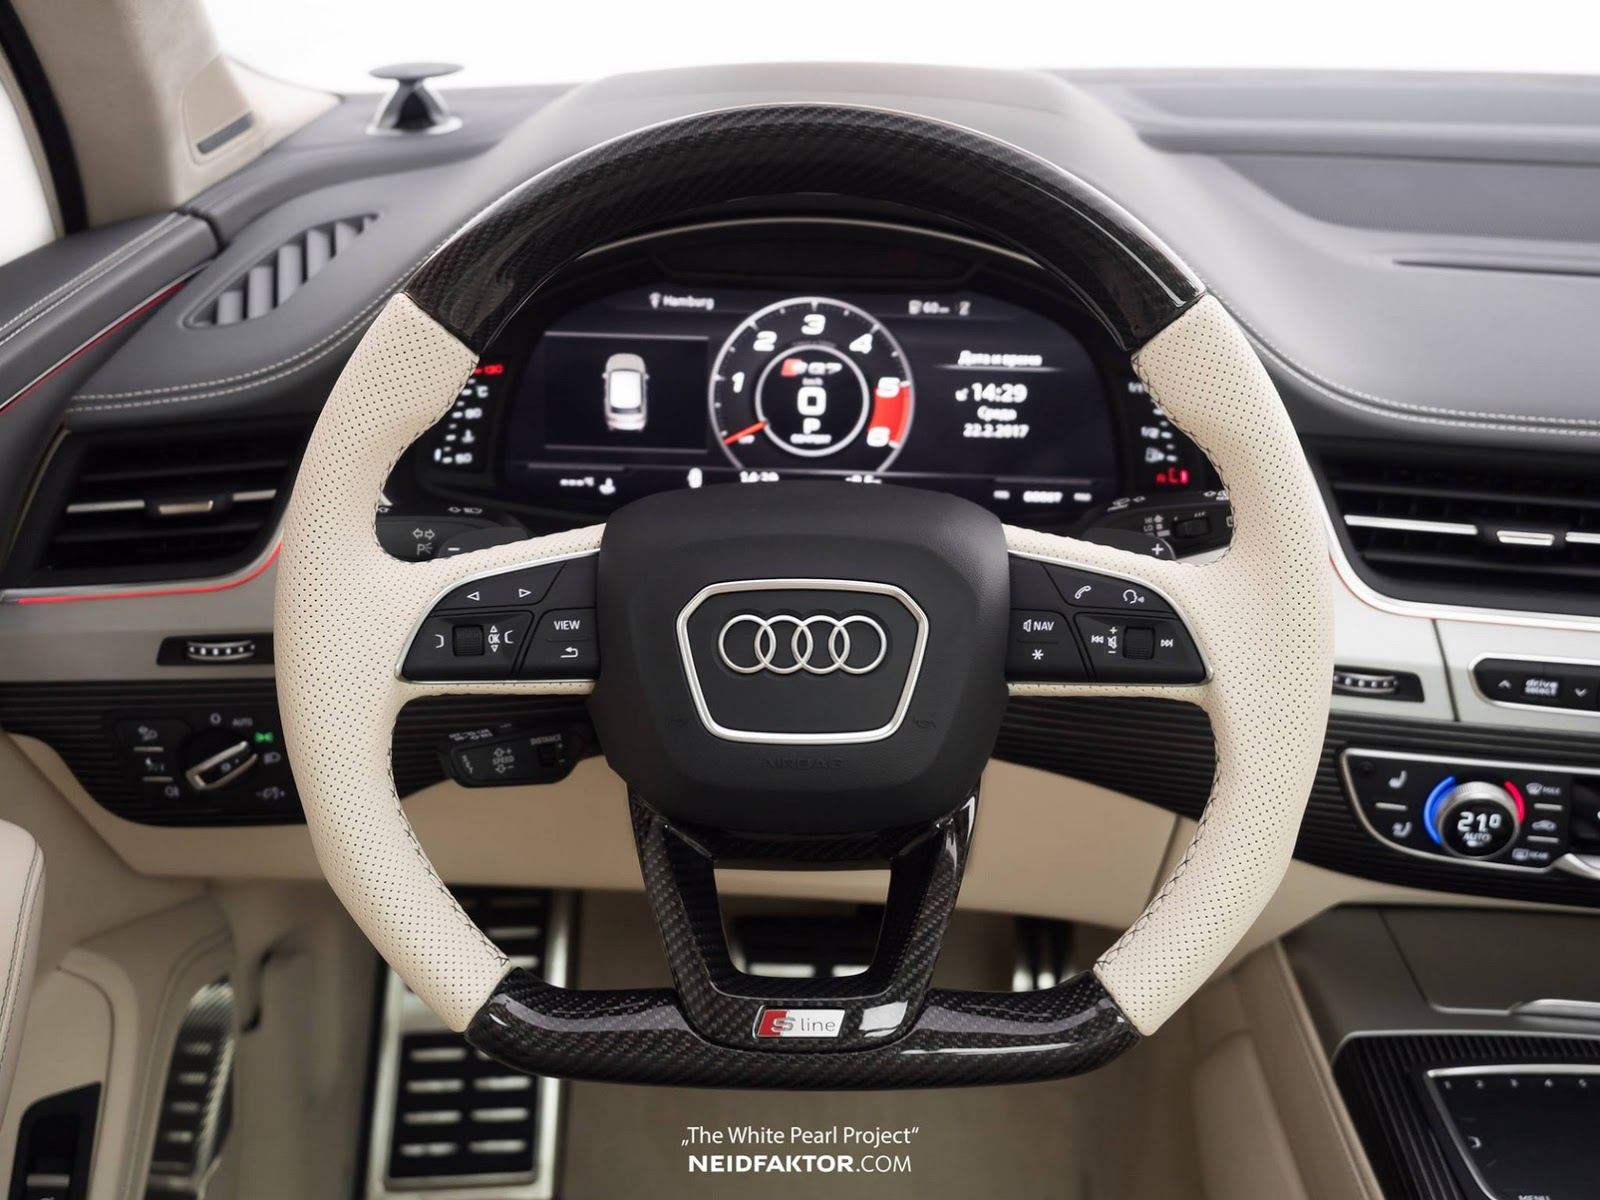 Audi SQ7 by Neidfaktor (18)